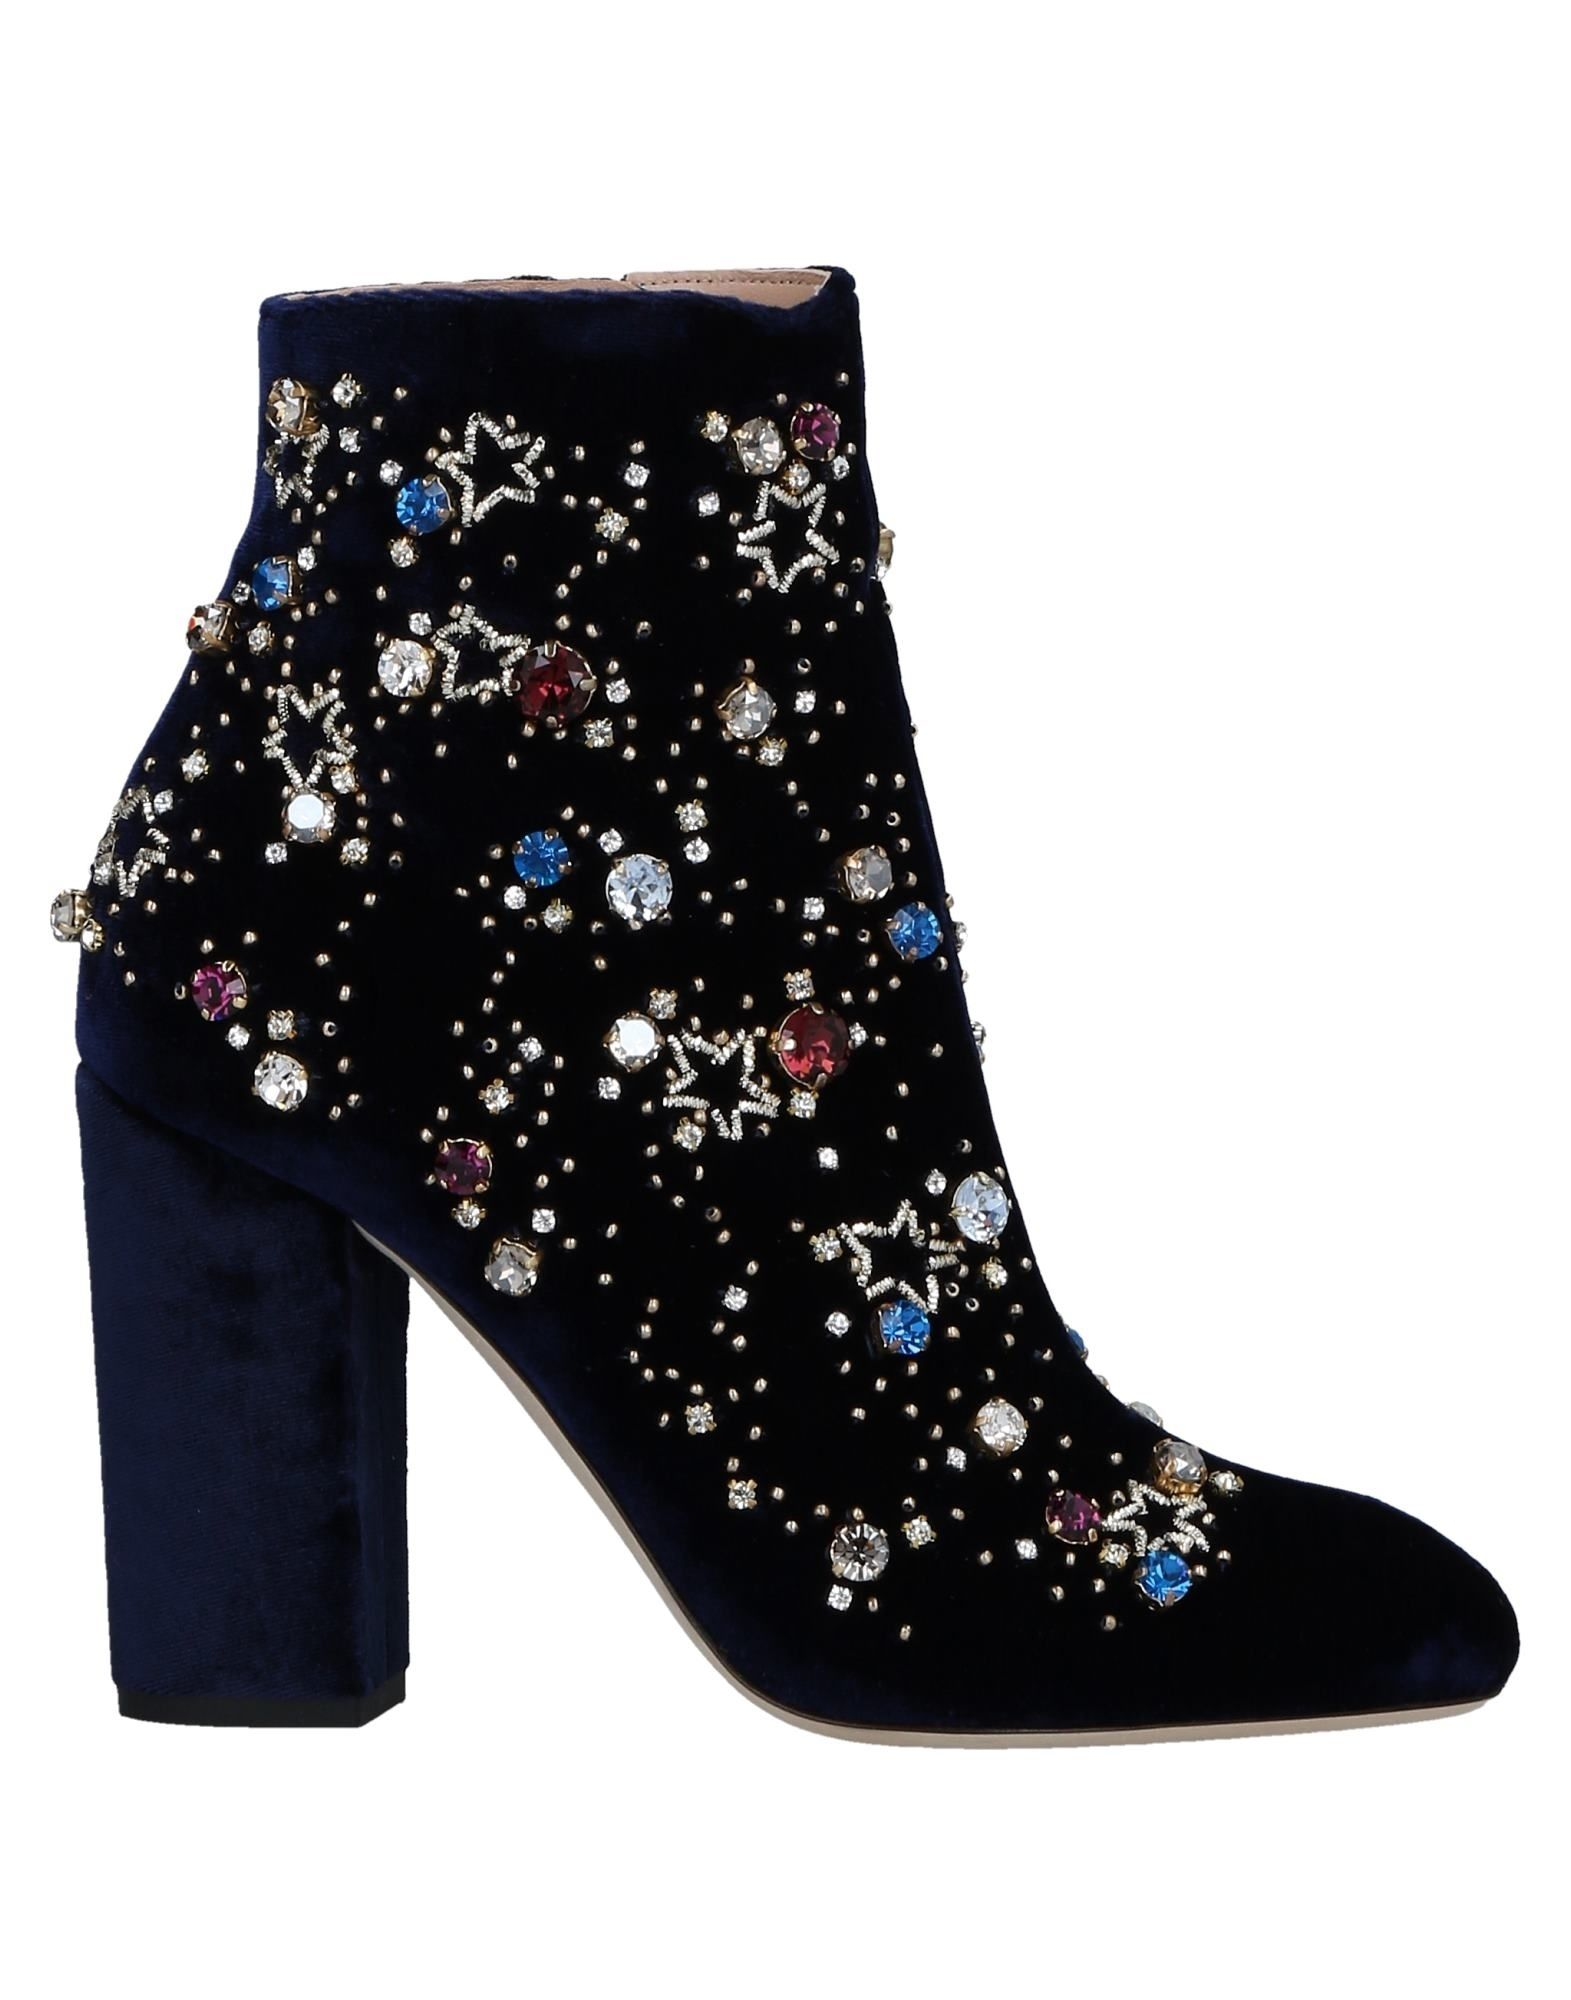 GEDEBE Ankle Boots in Dark Blue